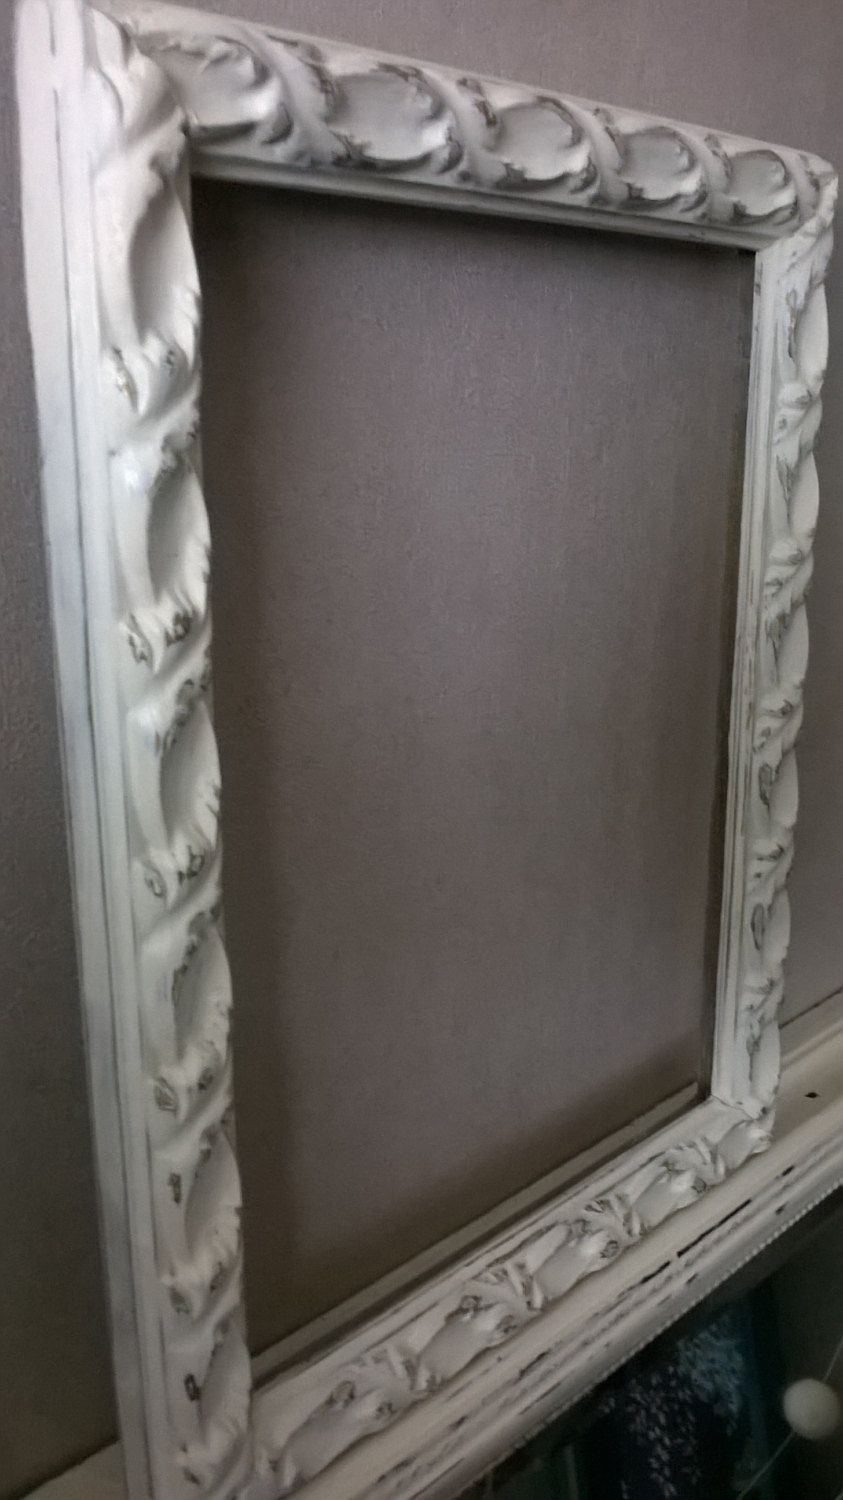 vintage ornate shabby chic ornate picture frame 22 x 28 cms clotted cream chalk paint art gallery wall wall decoration wedding